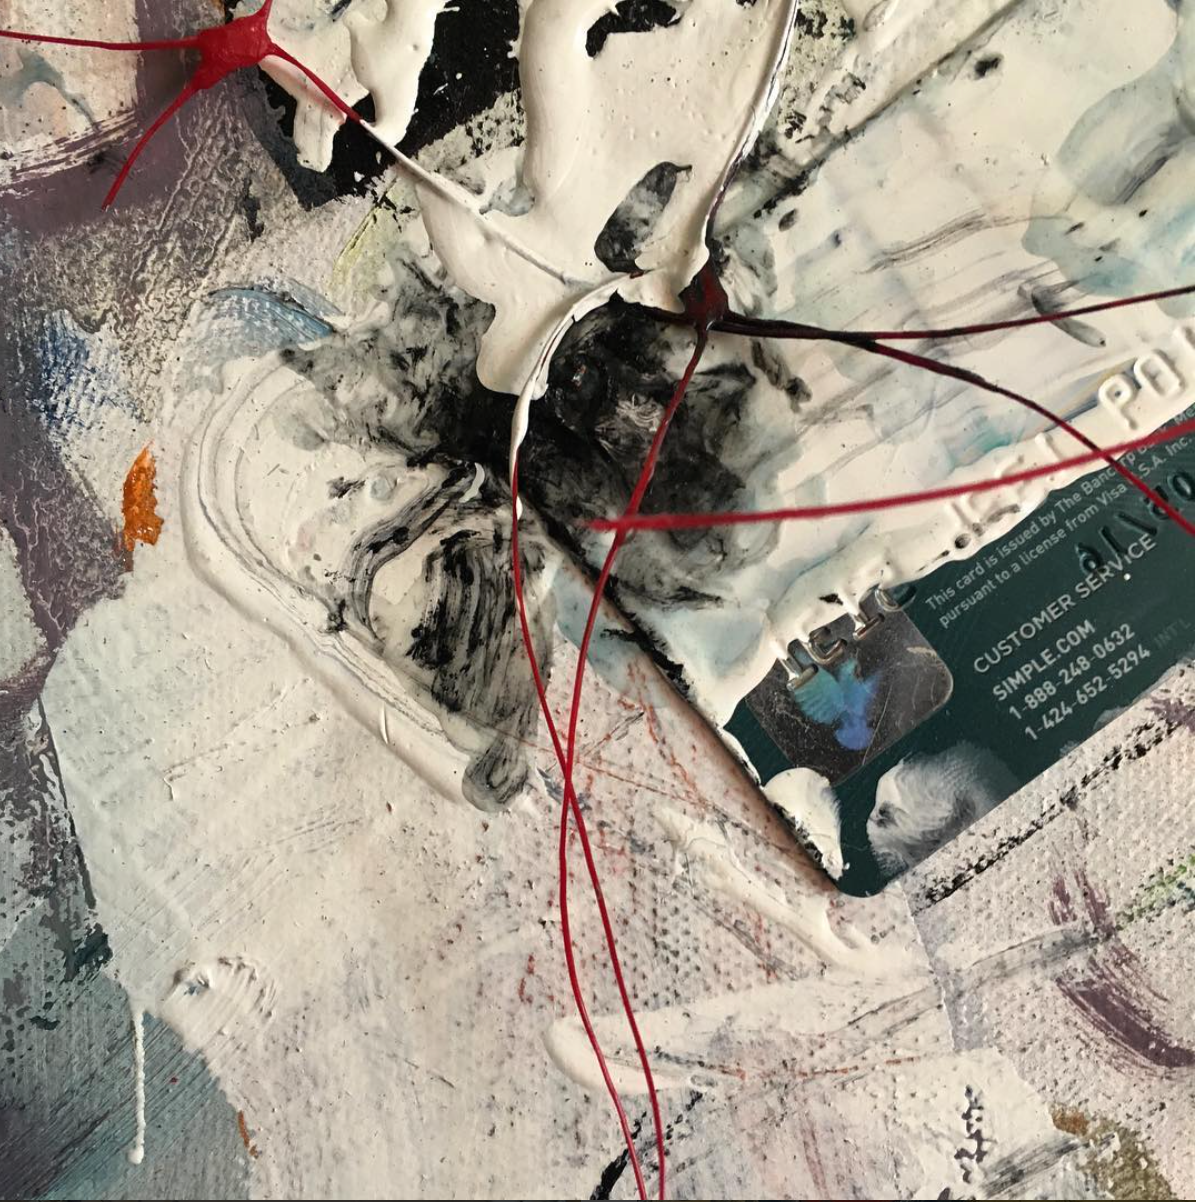 Detail of a new  Plastic Piece which includes an expired bank card and red plastic netting